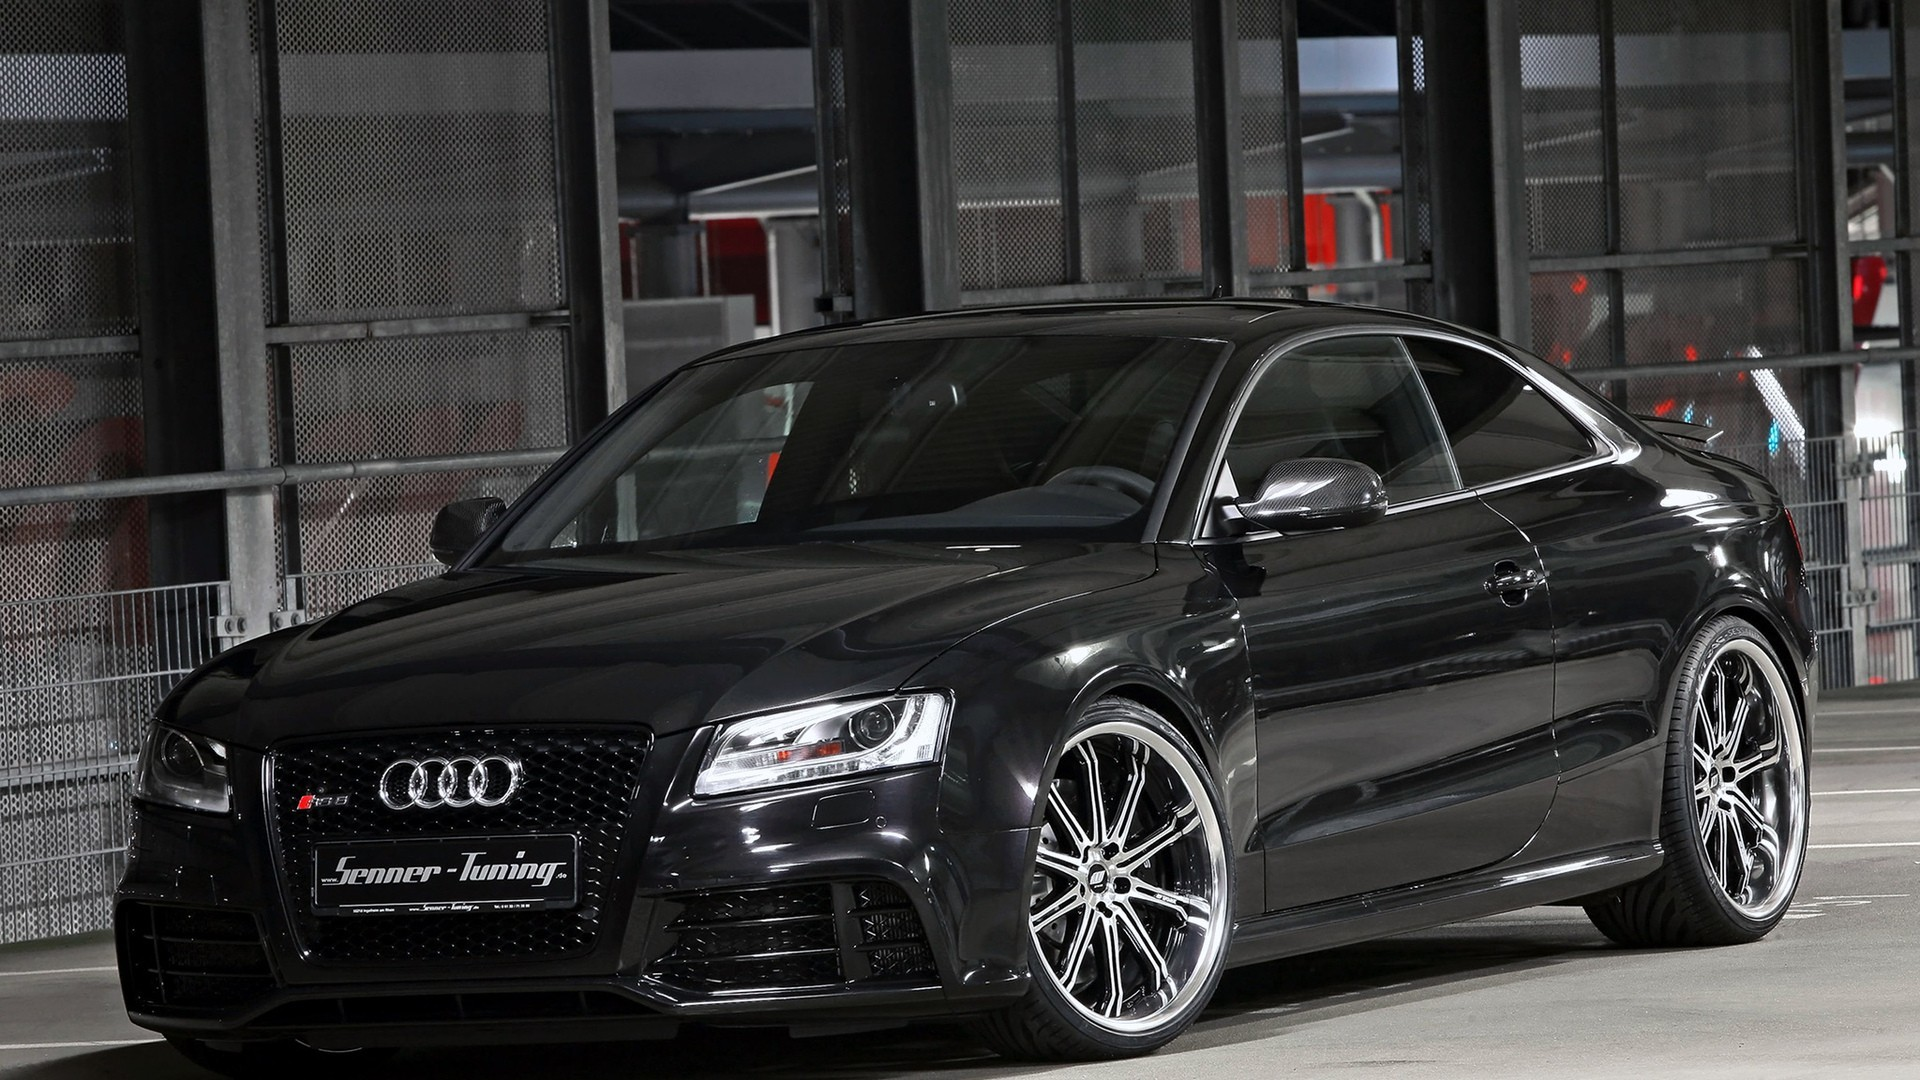 Genial 1920x1080 Audi Rs5 12 Cool Hd Wallpaper 4 Coupe Sport Edition Wallpapers